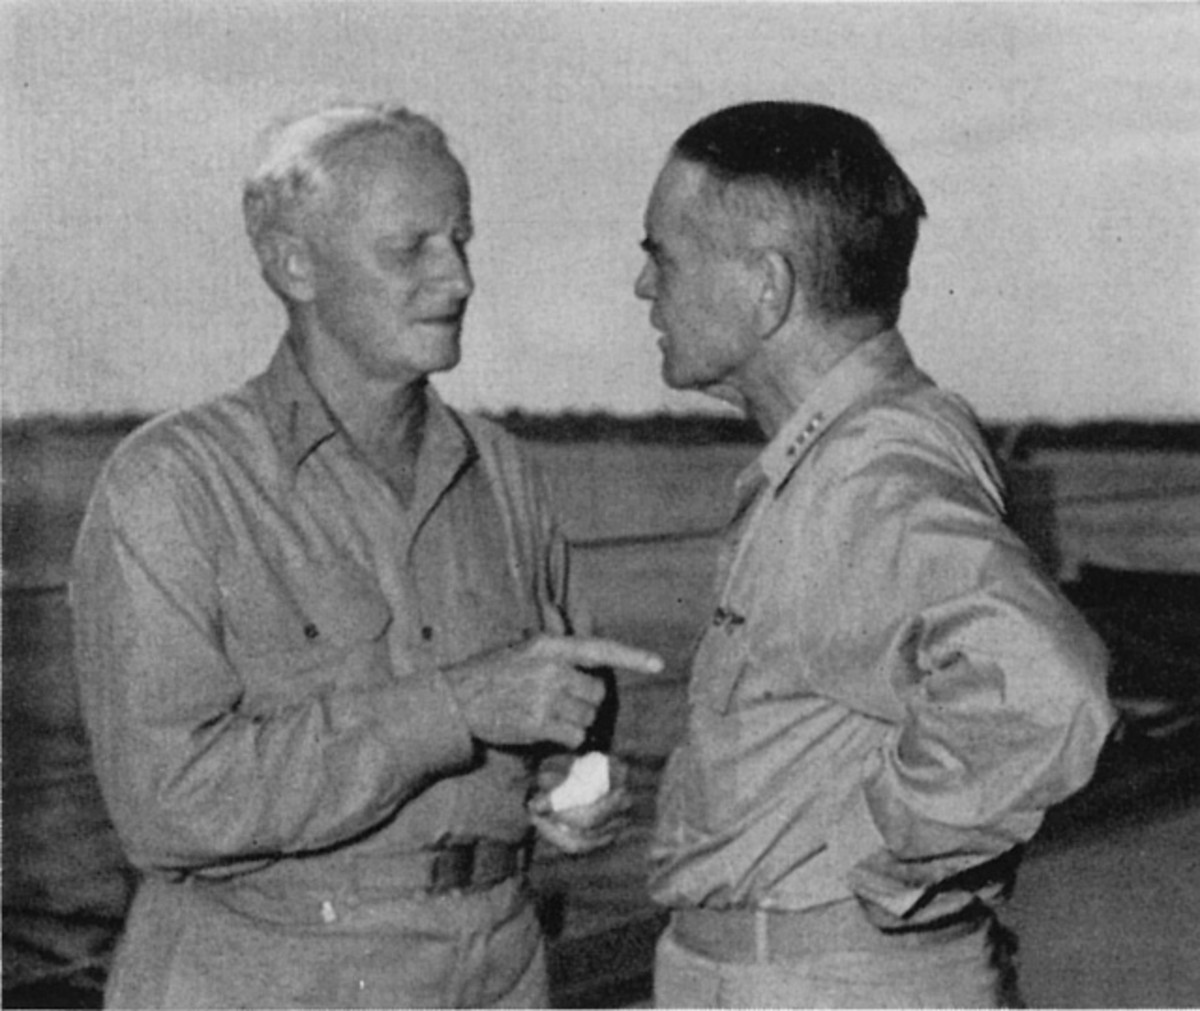 WW2: US Admirals Chester Nimitz (left) and William Halsey